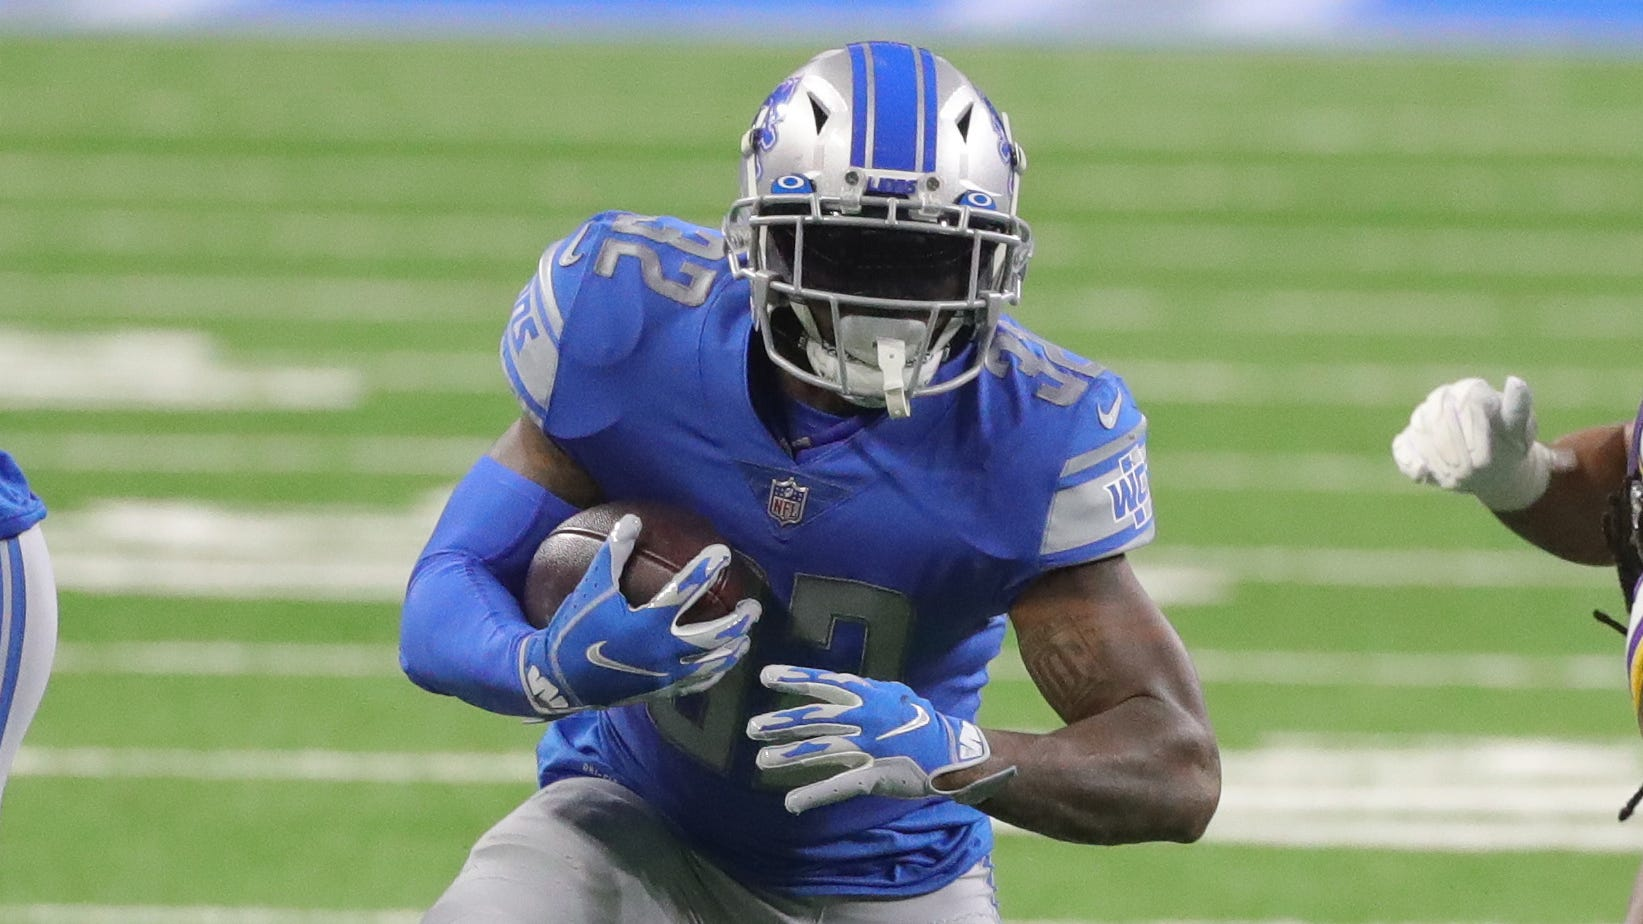 Lions running back D'Andre Swift runs the ball during the second half of the 37-35 loss to the Vikings at Ford Field on Sunday, January 3, 2021.